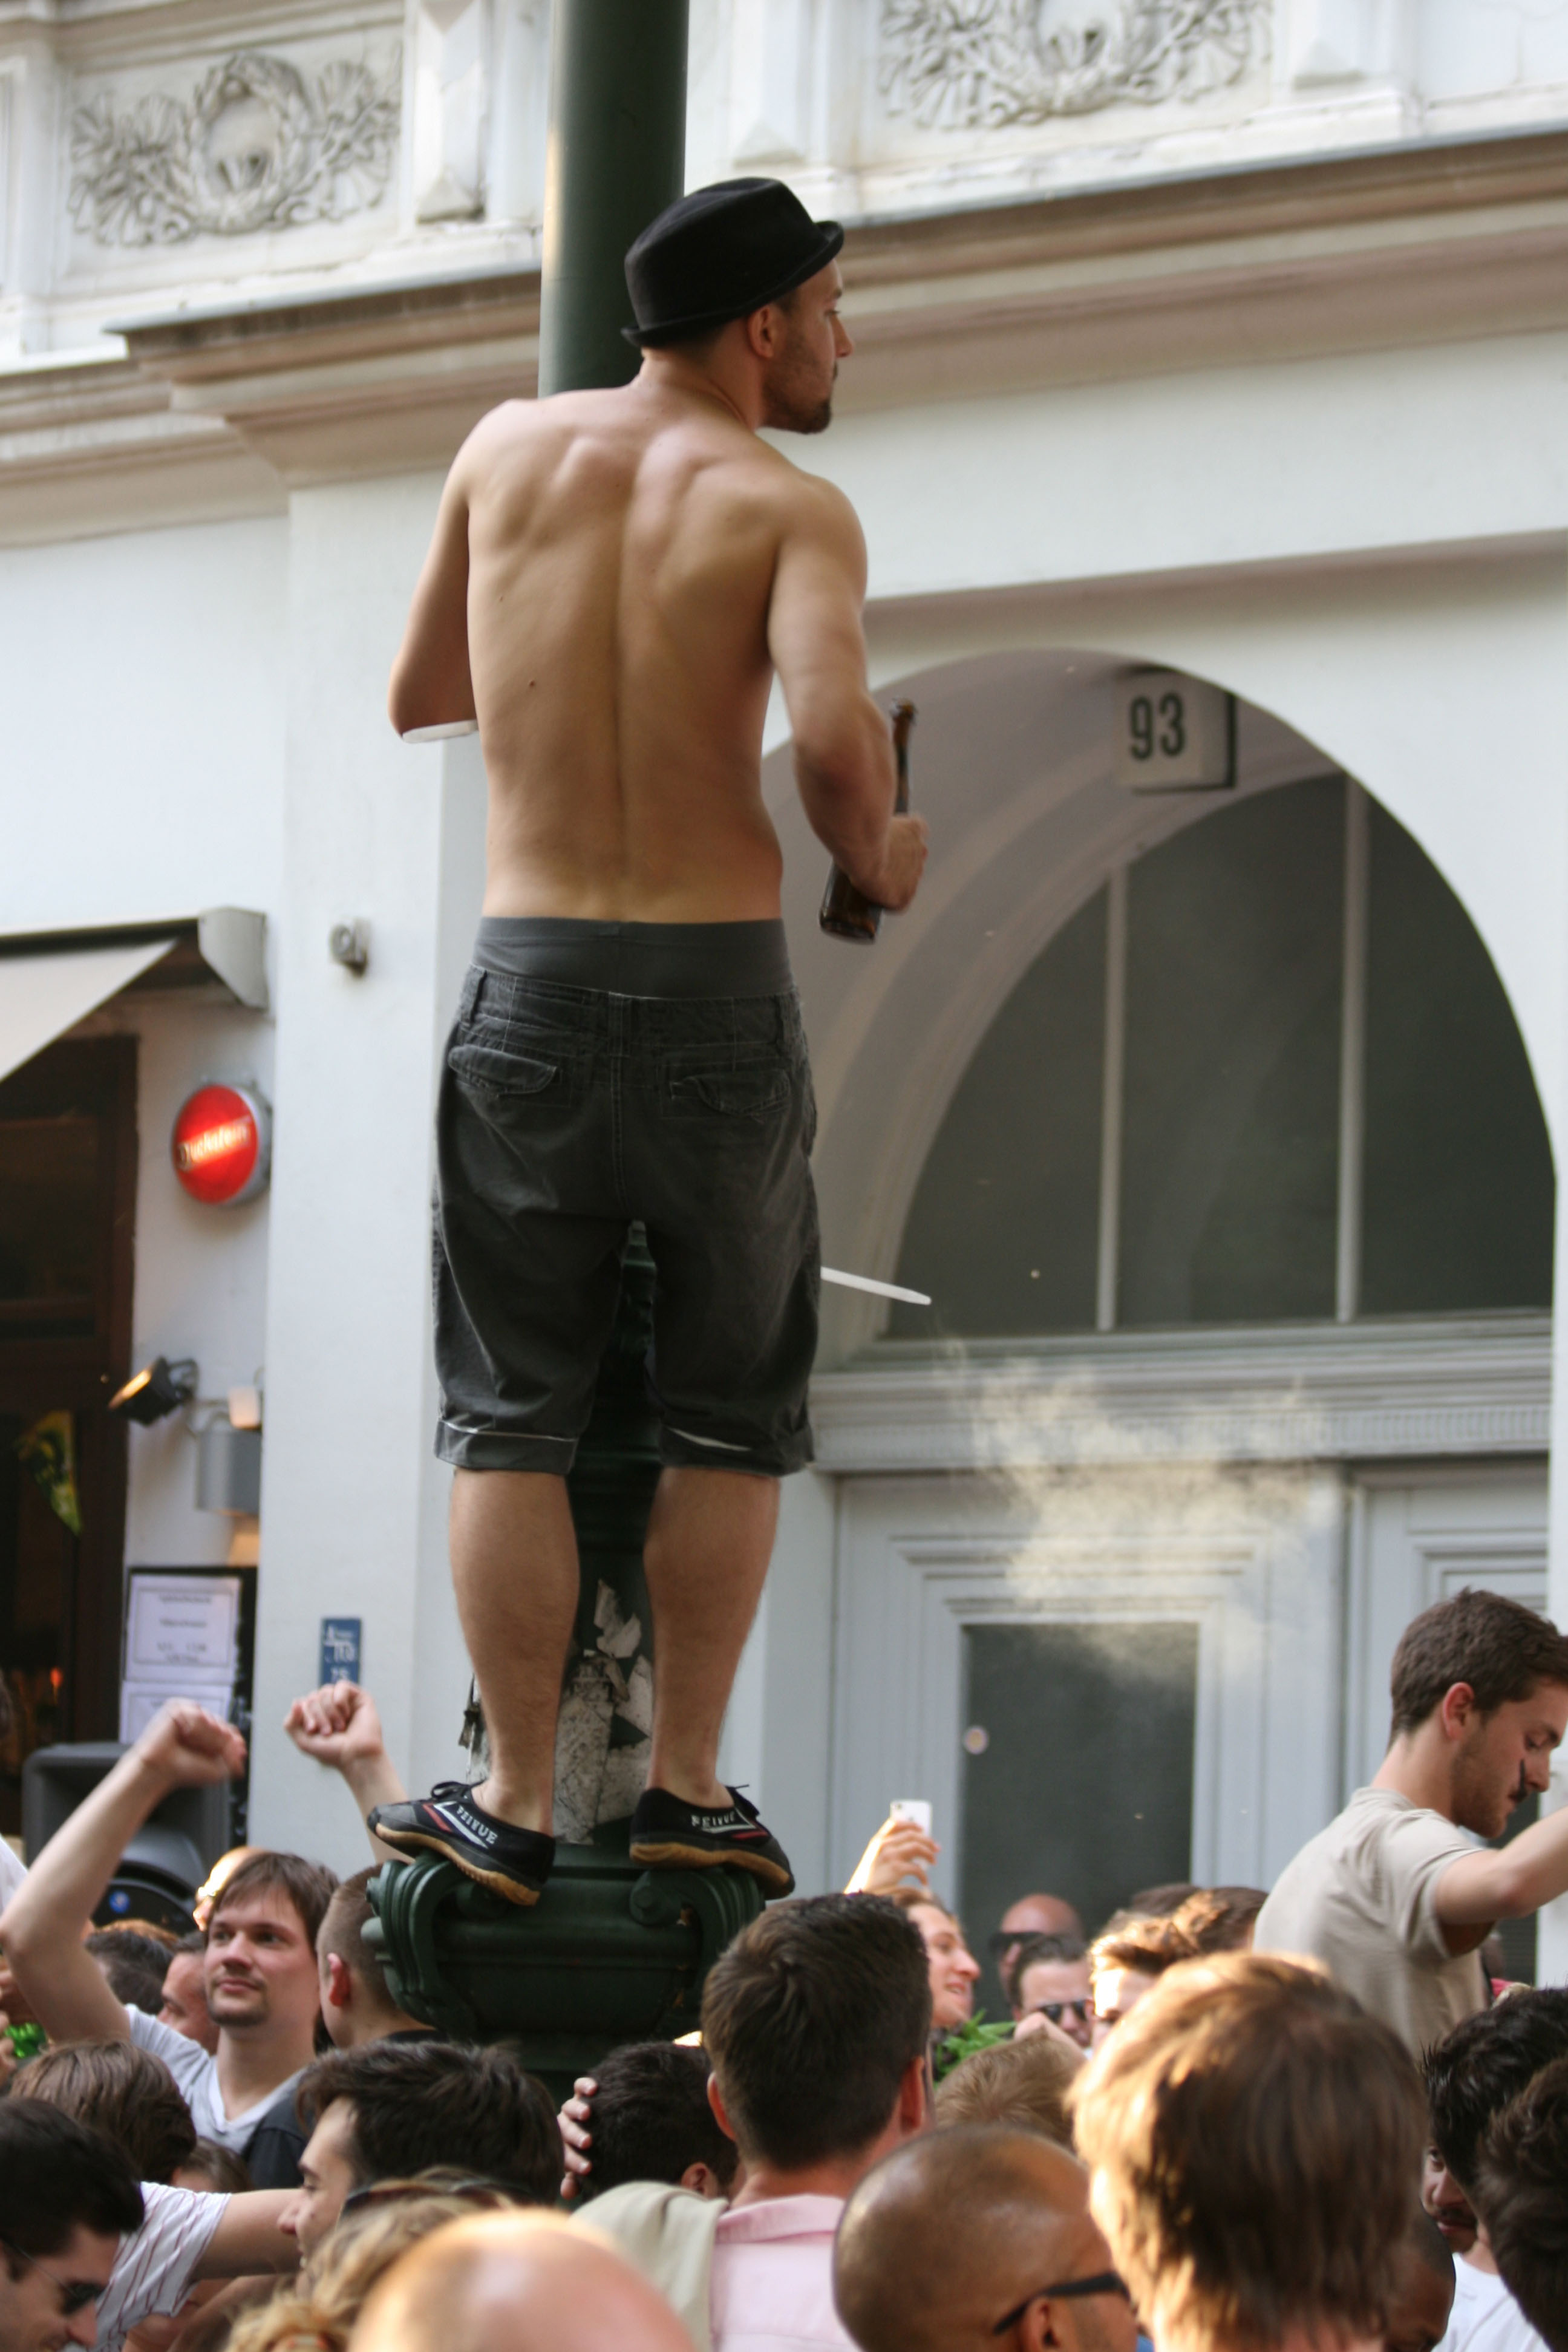 A man climbs a Lamp Post for a better view at Karneval der Kulturen (Carnival of Cultures) in Berlin